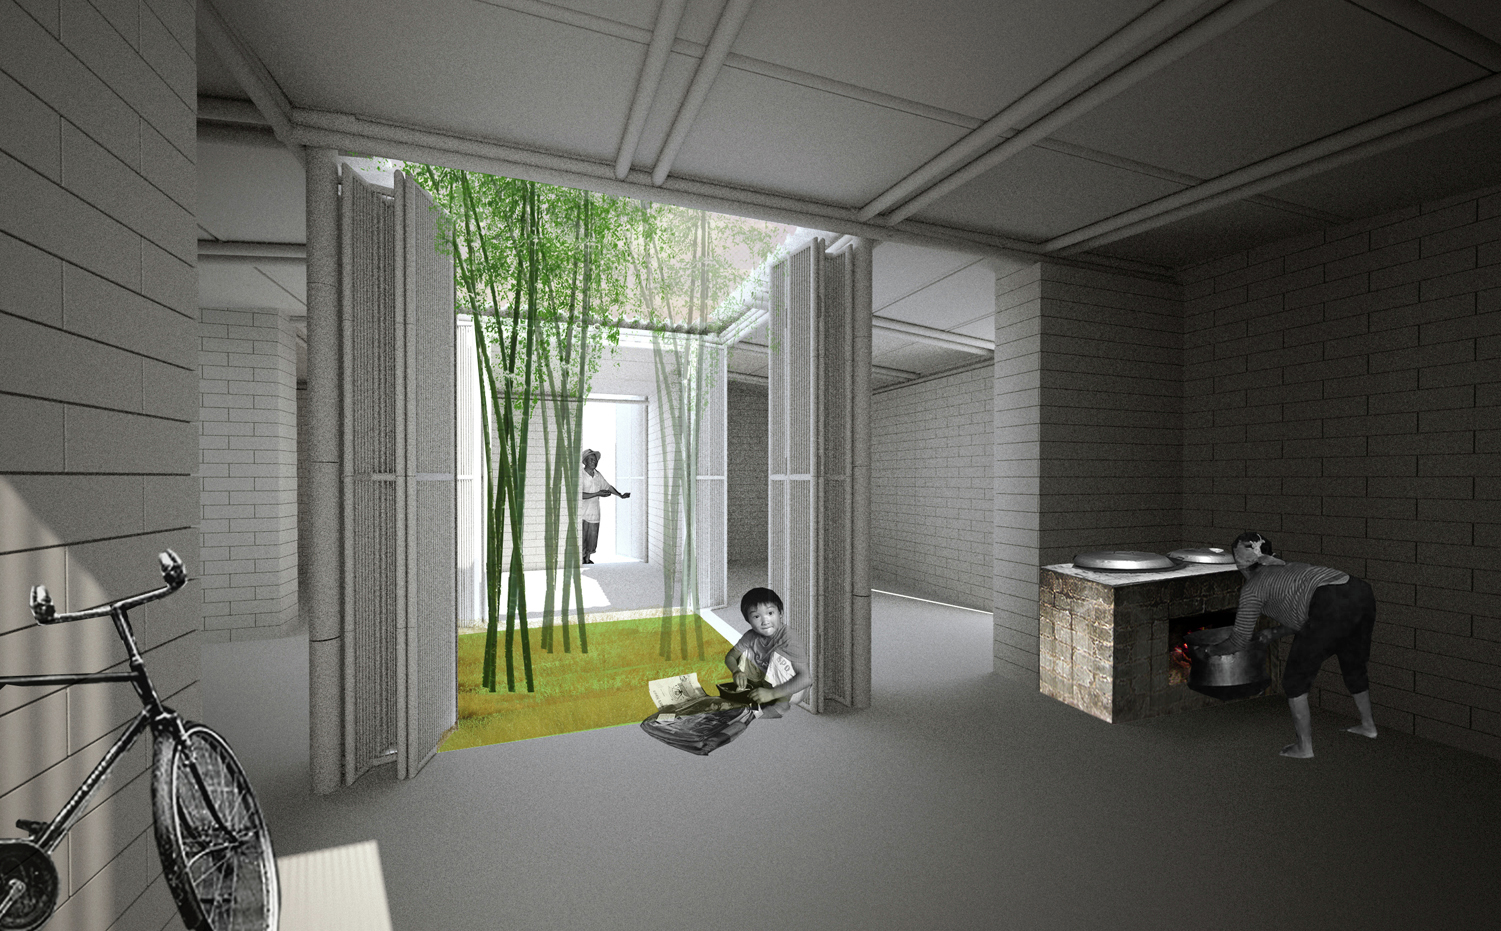 gallery of 1k house - pinwheel house / ying chee chui - 5